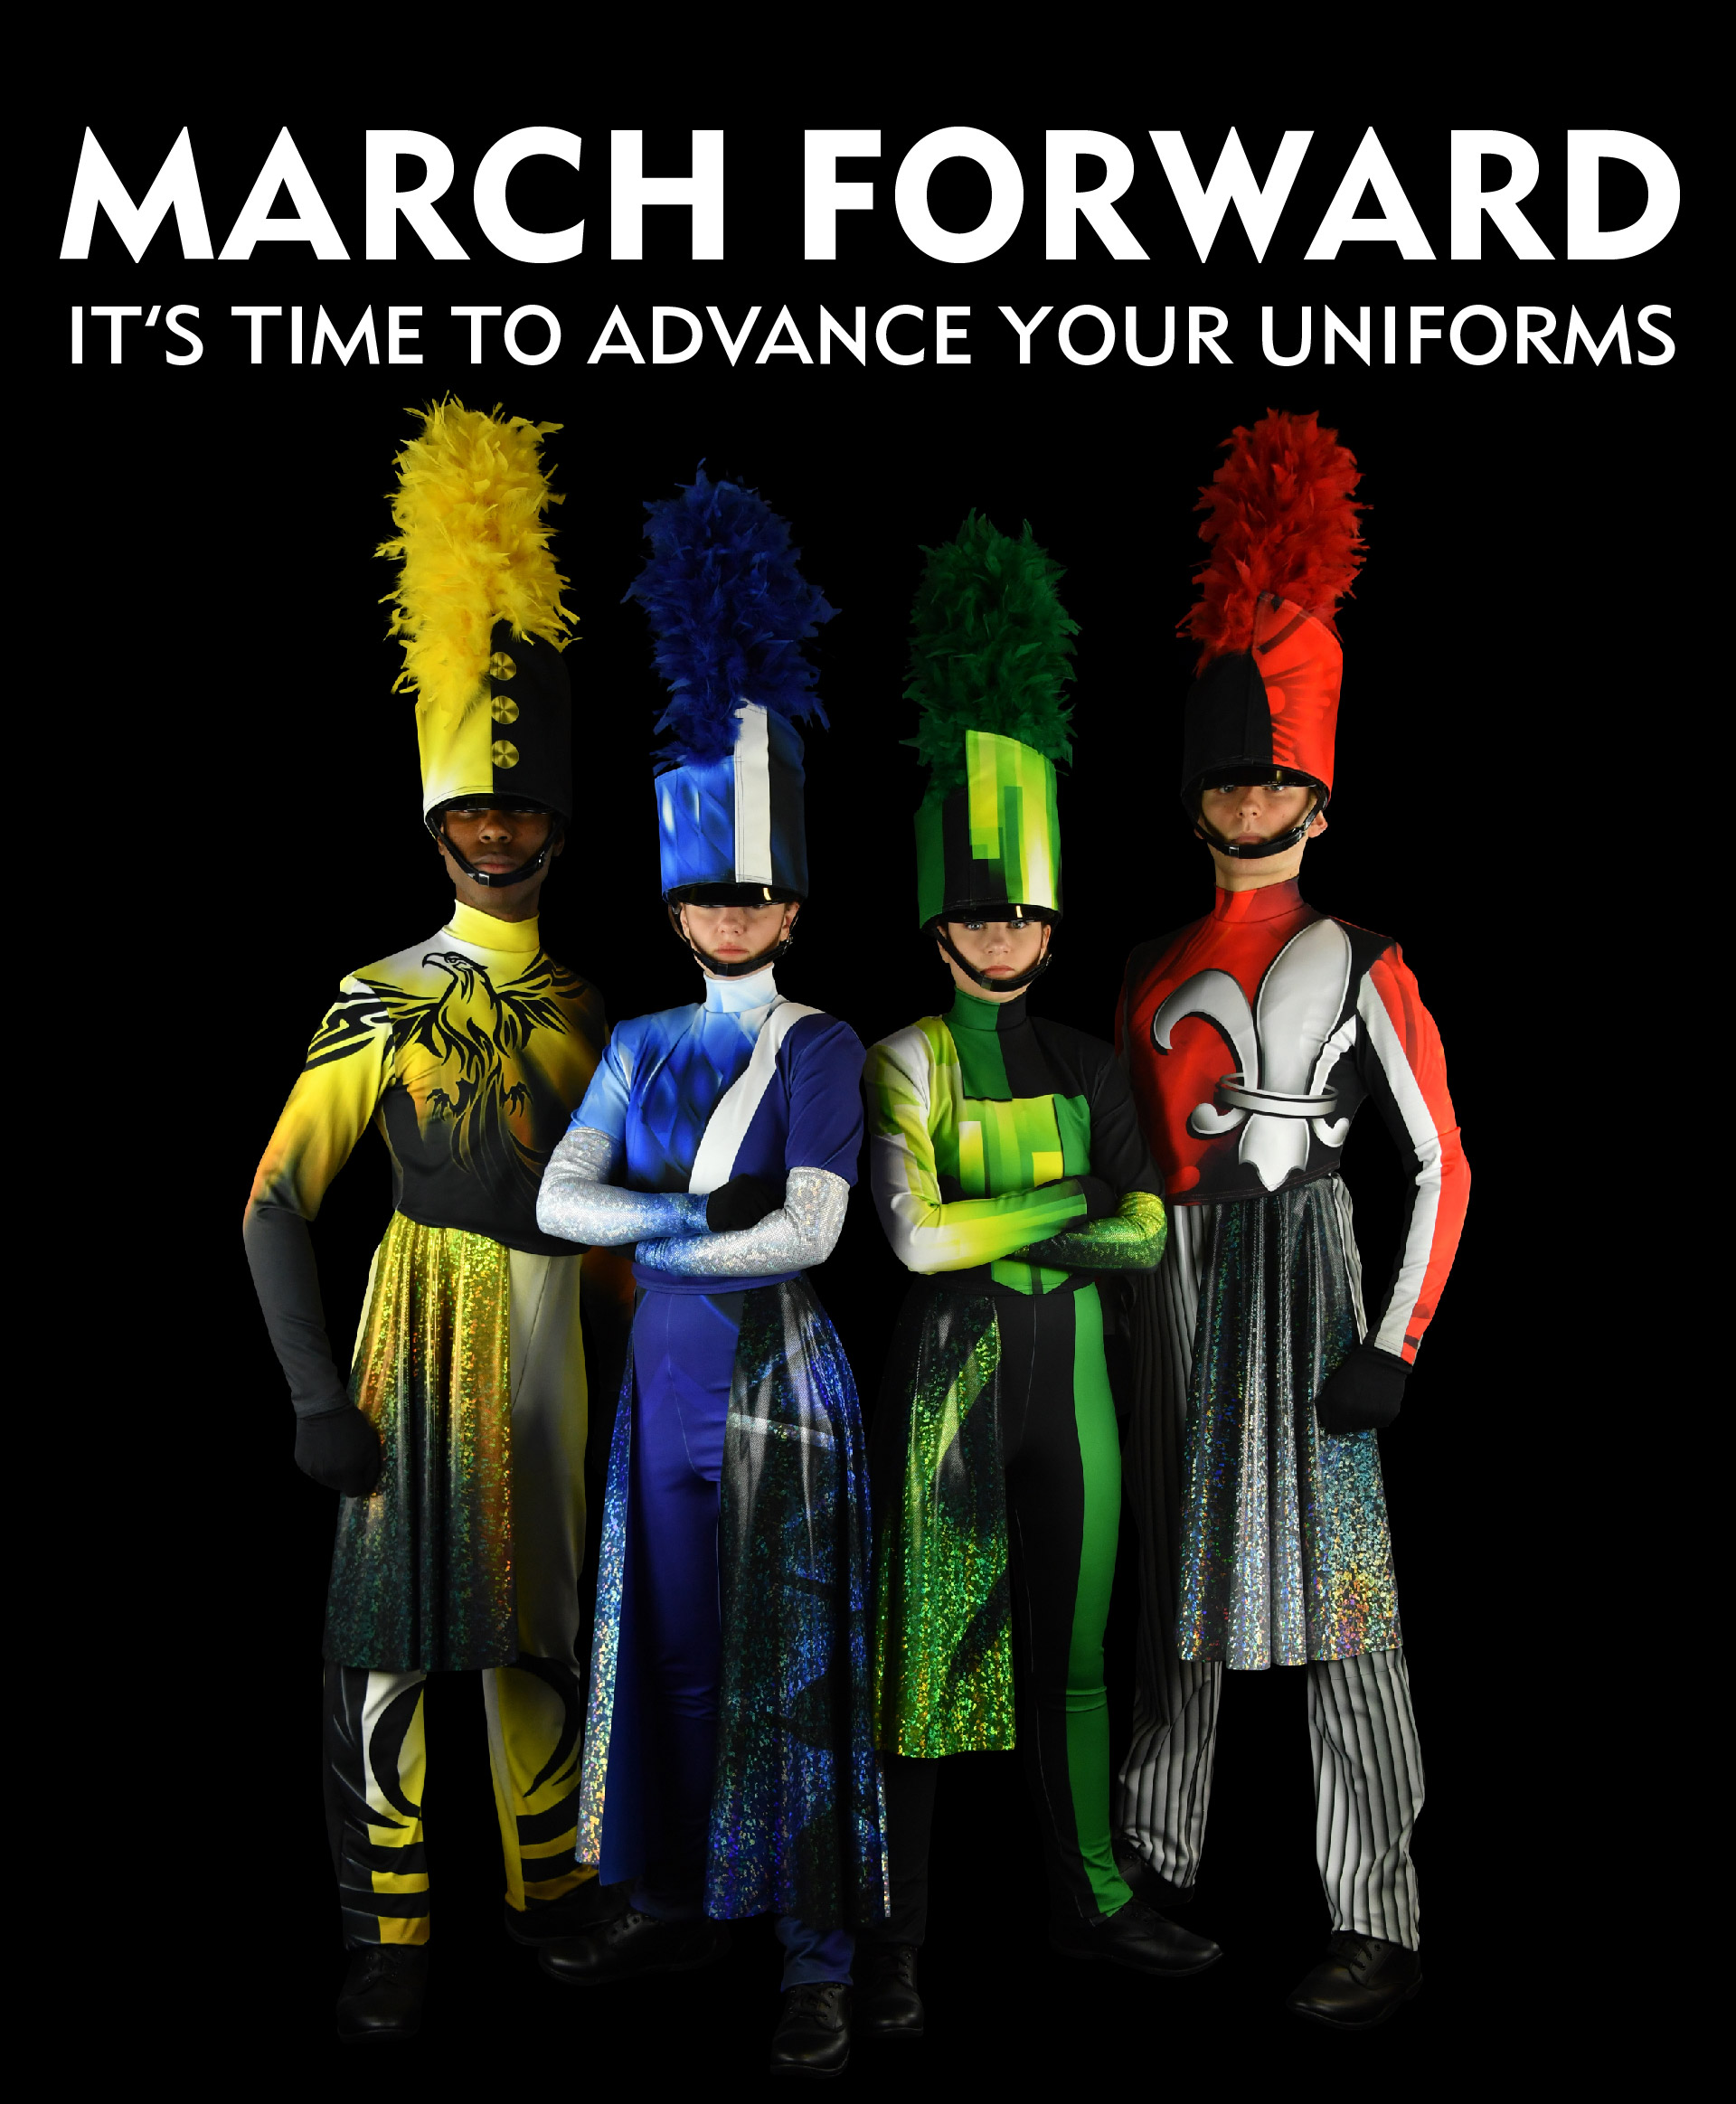 McCormick's Marching Uniform: March Forward, It's time to advance your uniforms.